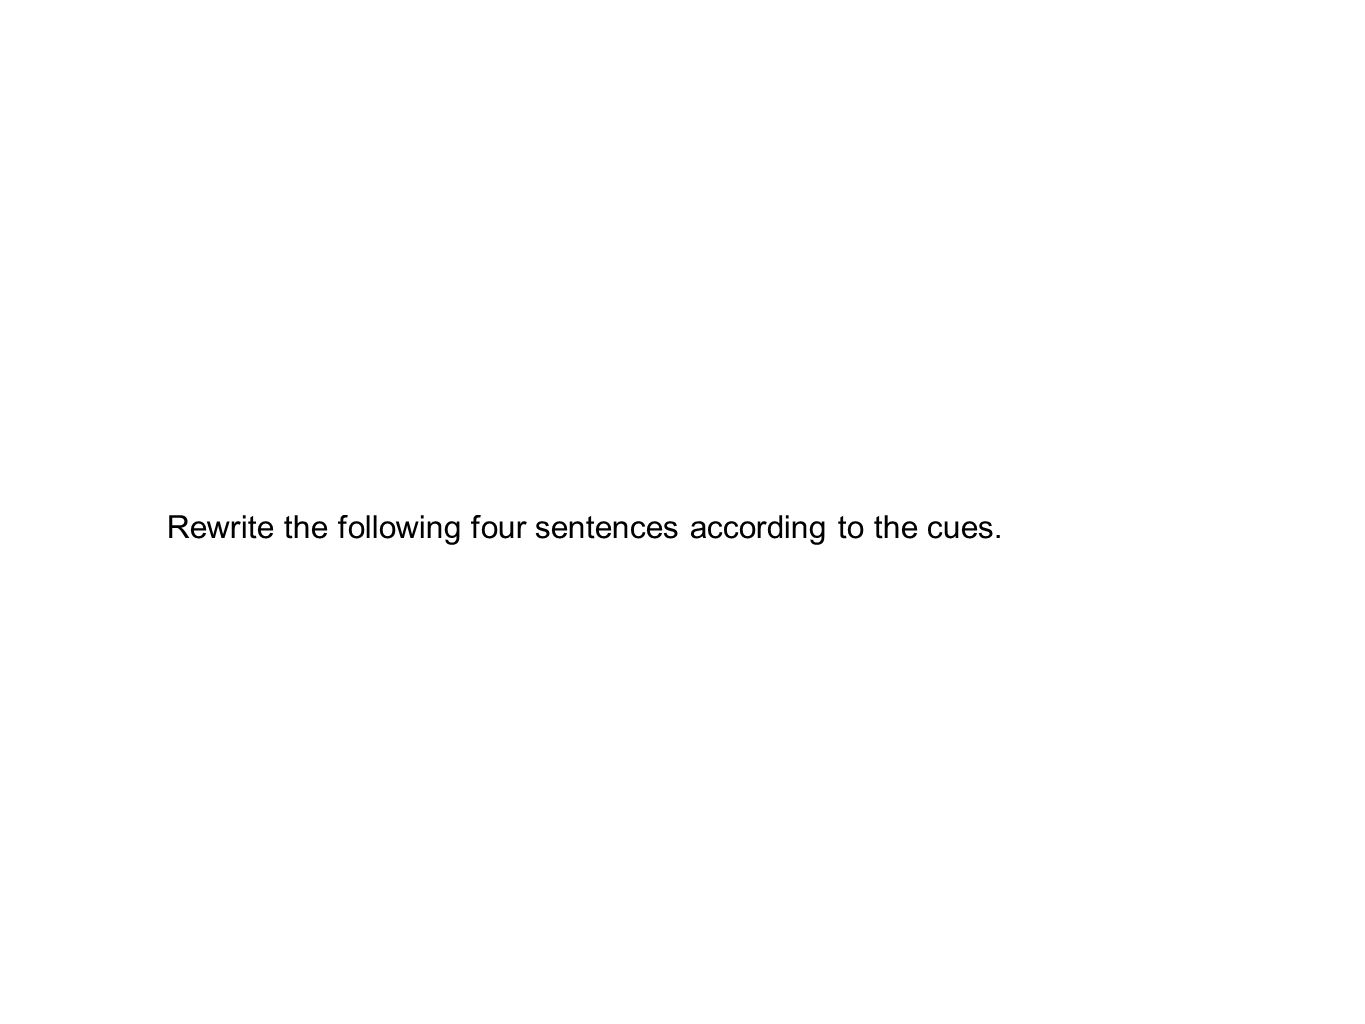 Rewrite the following four sentences according to the cues.